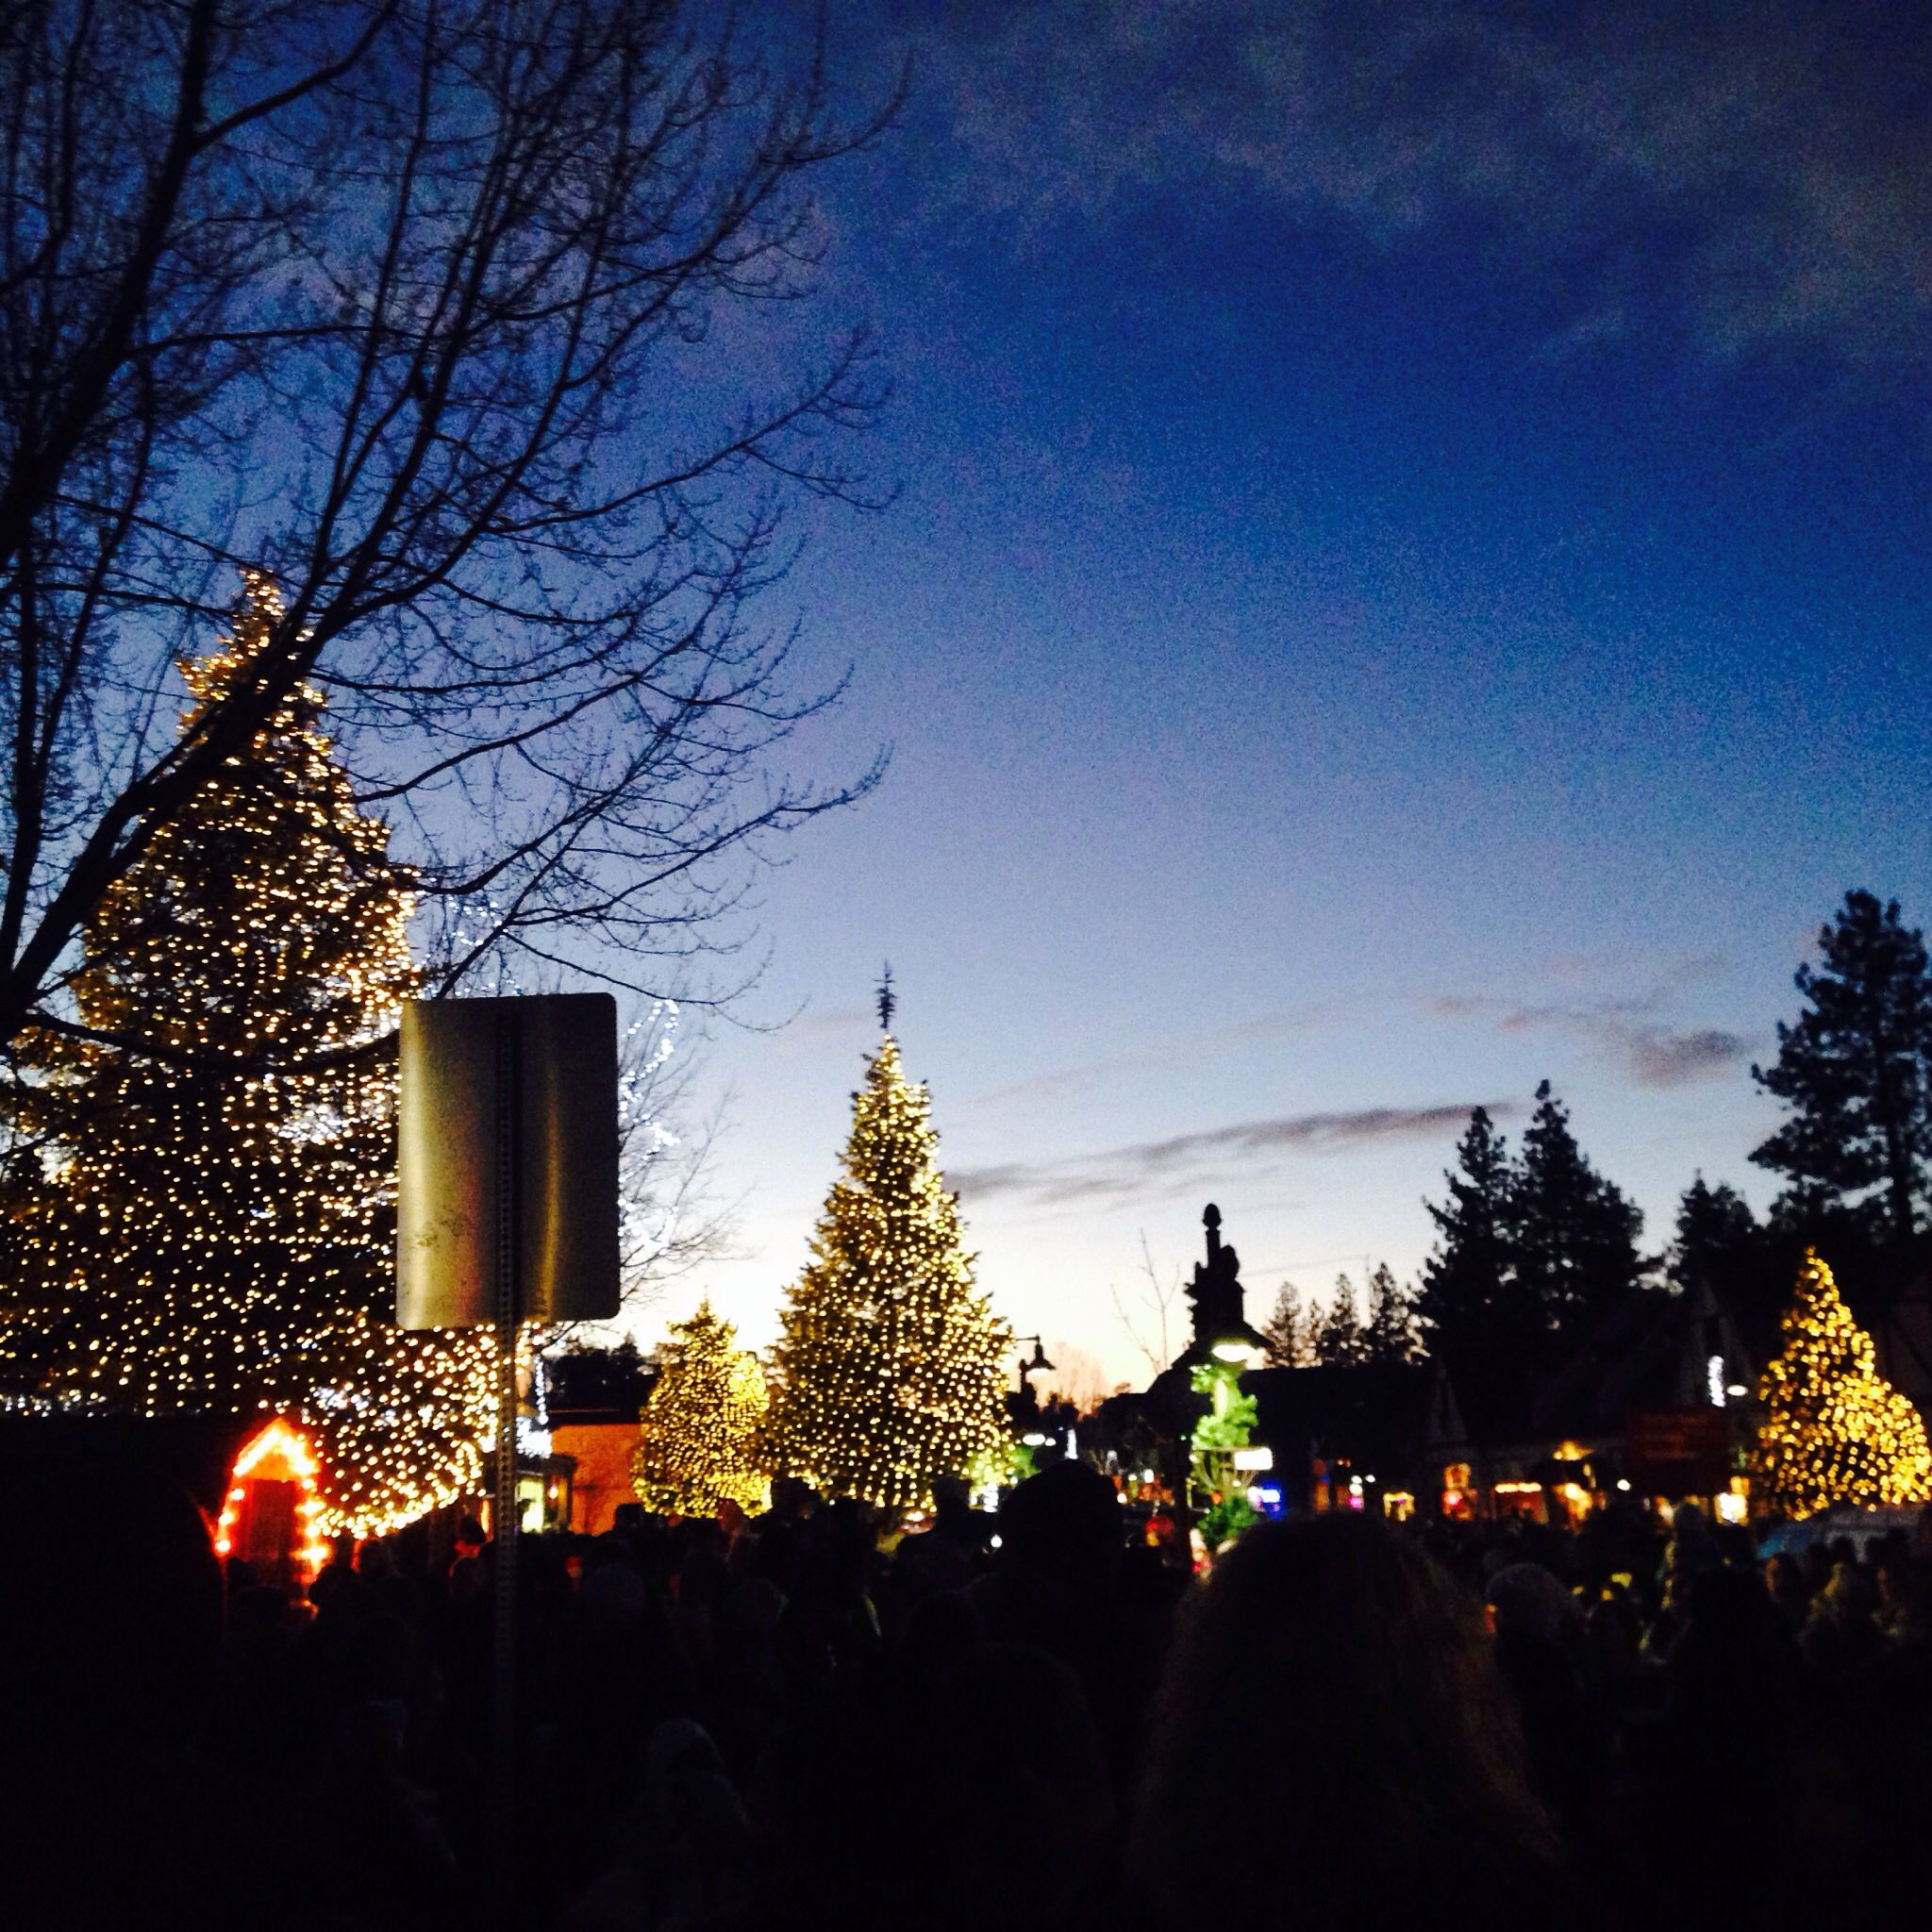 Big Bear Village Christmas.Big Bear Village Christmas Tree Lighting Oh The Places You